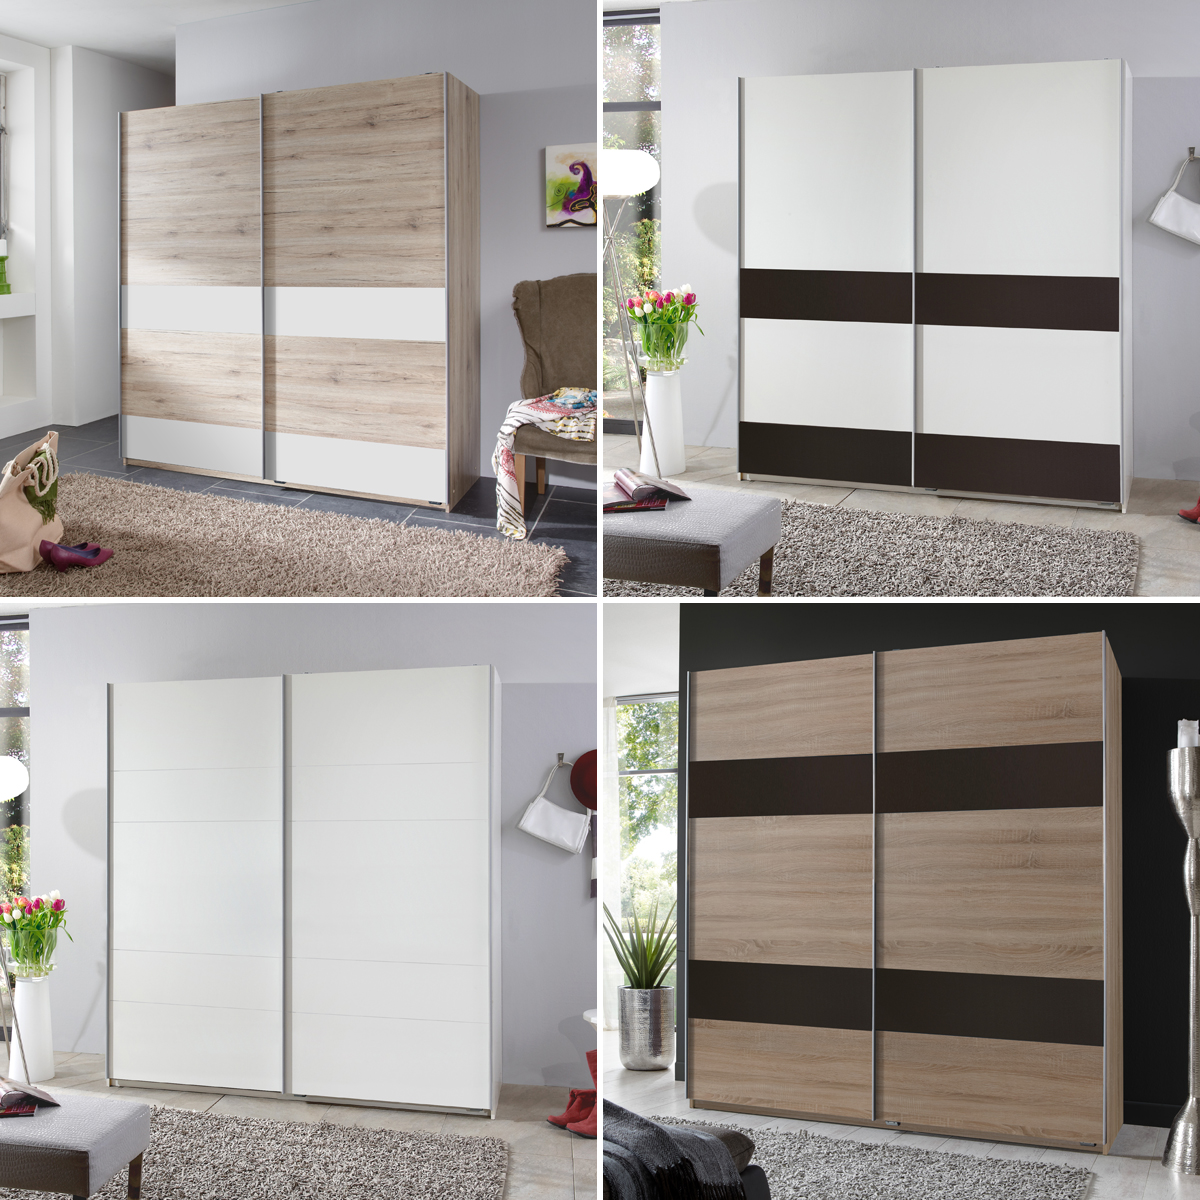 kleiderschrank chess schwebet renschrank 5 farben 180 cm oder 135 cm ebay. Black Bedroom Furniture Sets. Home Design Ideas